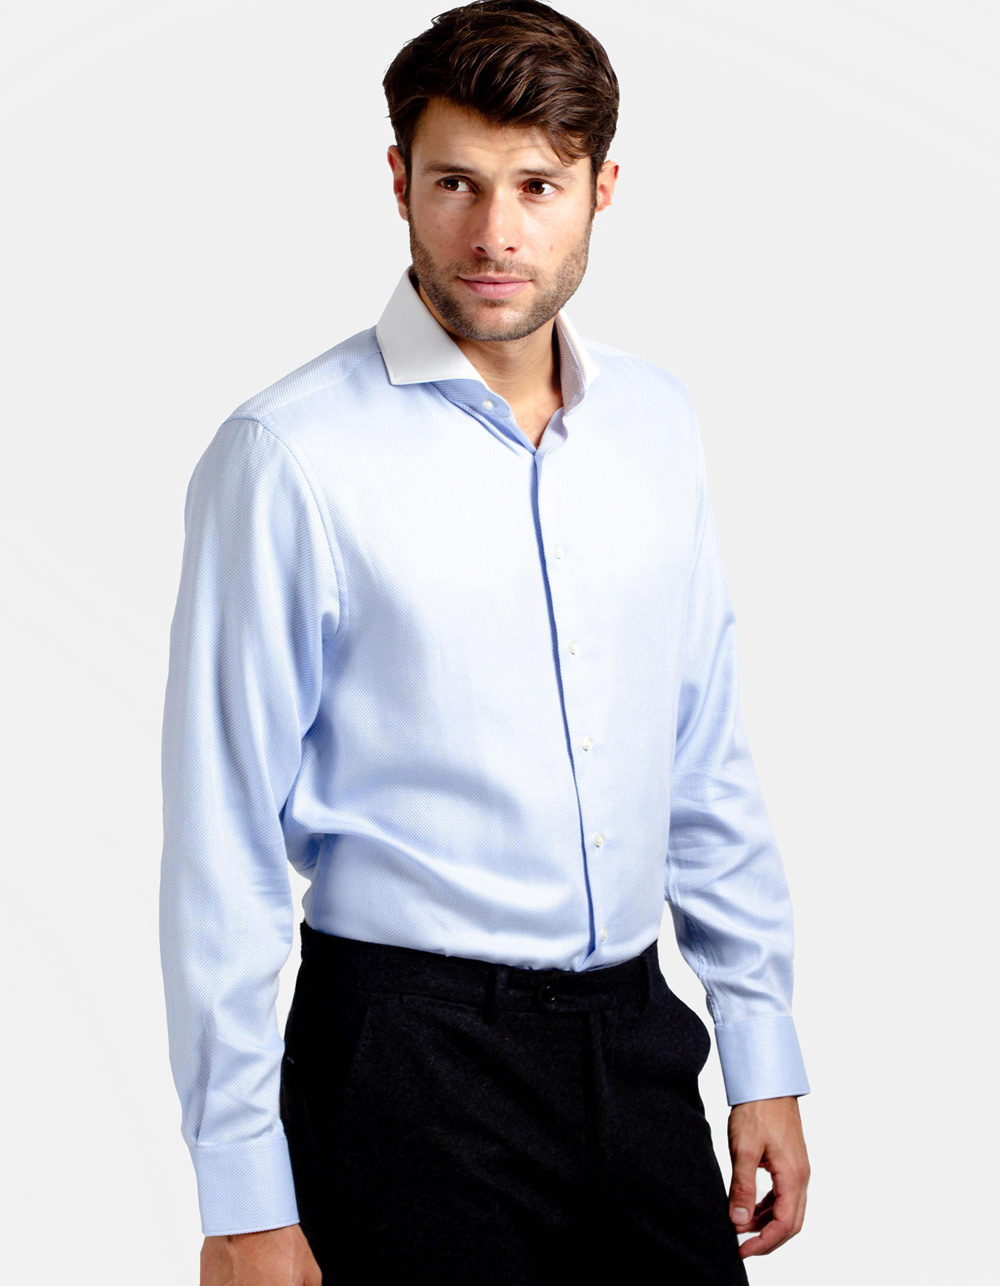 Blue Royal Oxford shirt with white collar